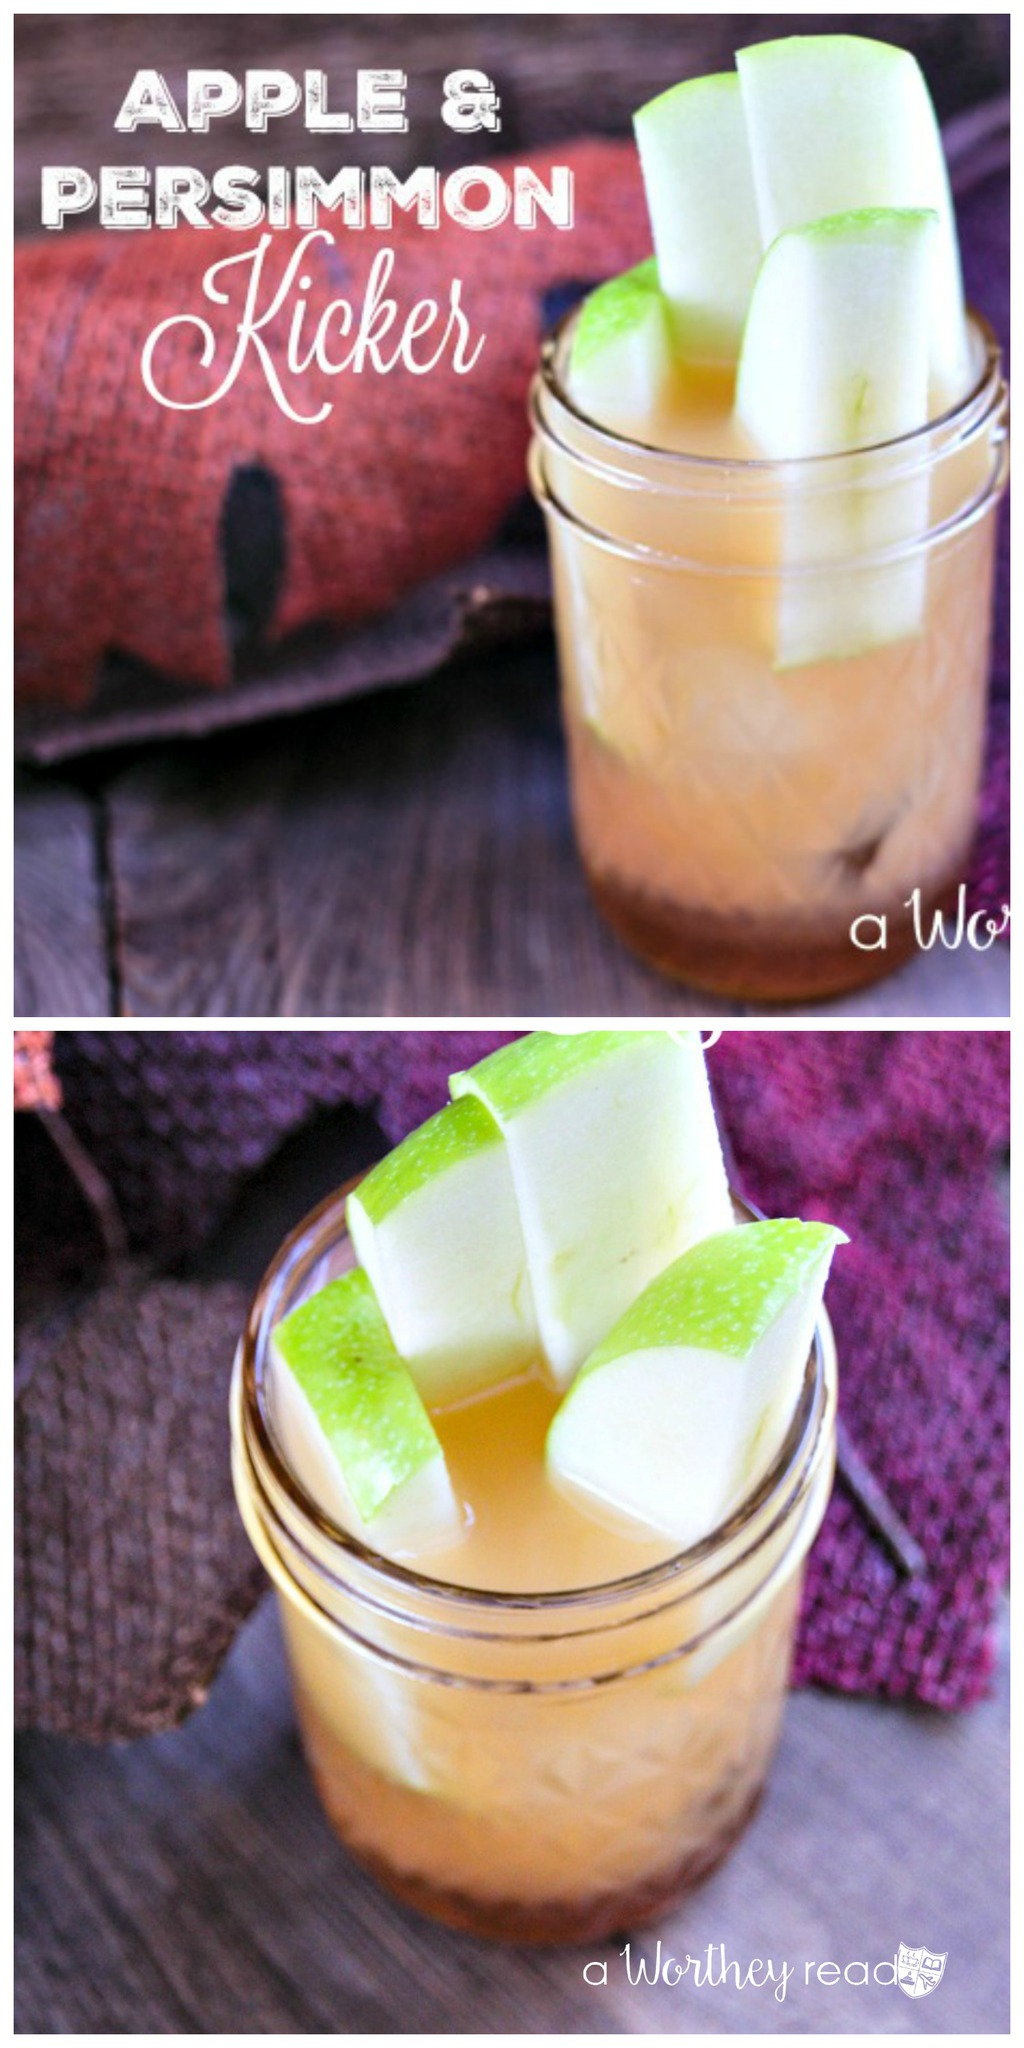 Apple & Persimmon Kicker - great drink for the weekend!